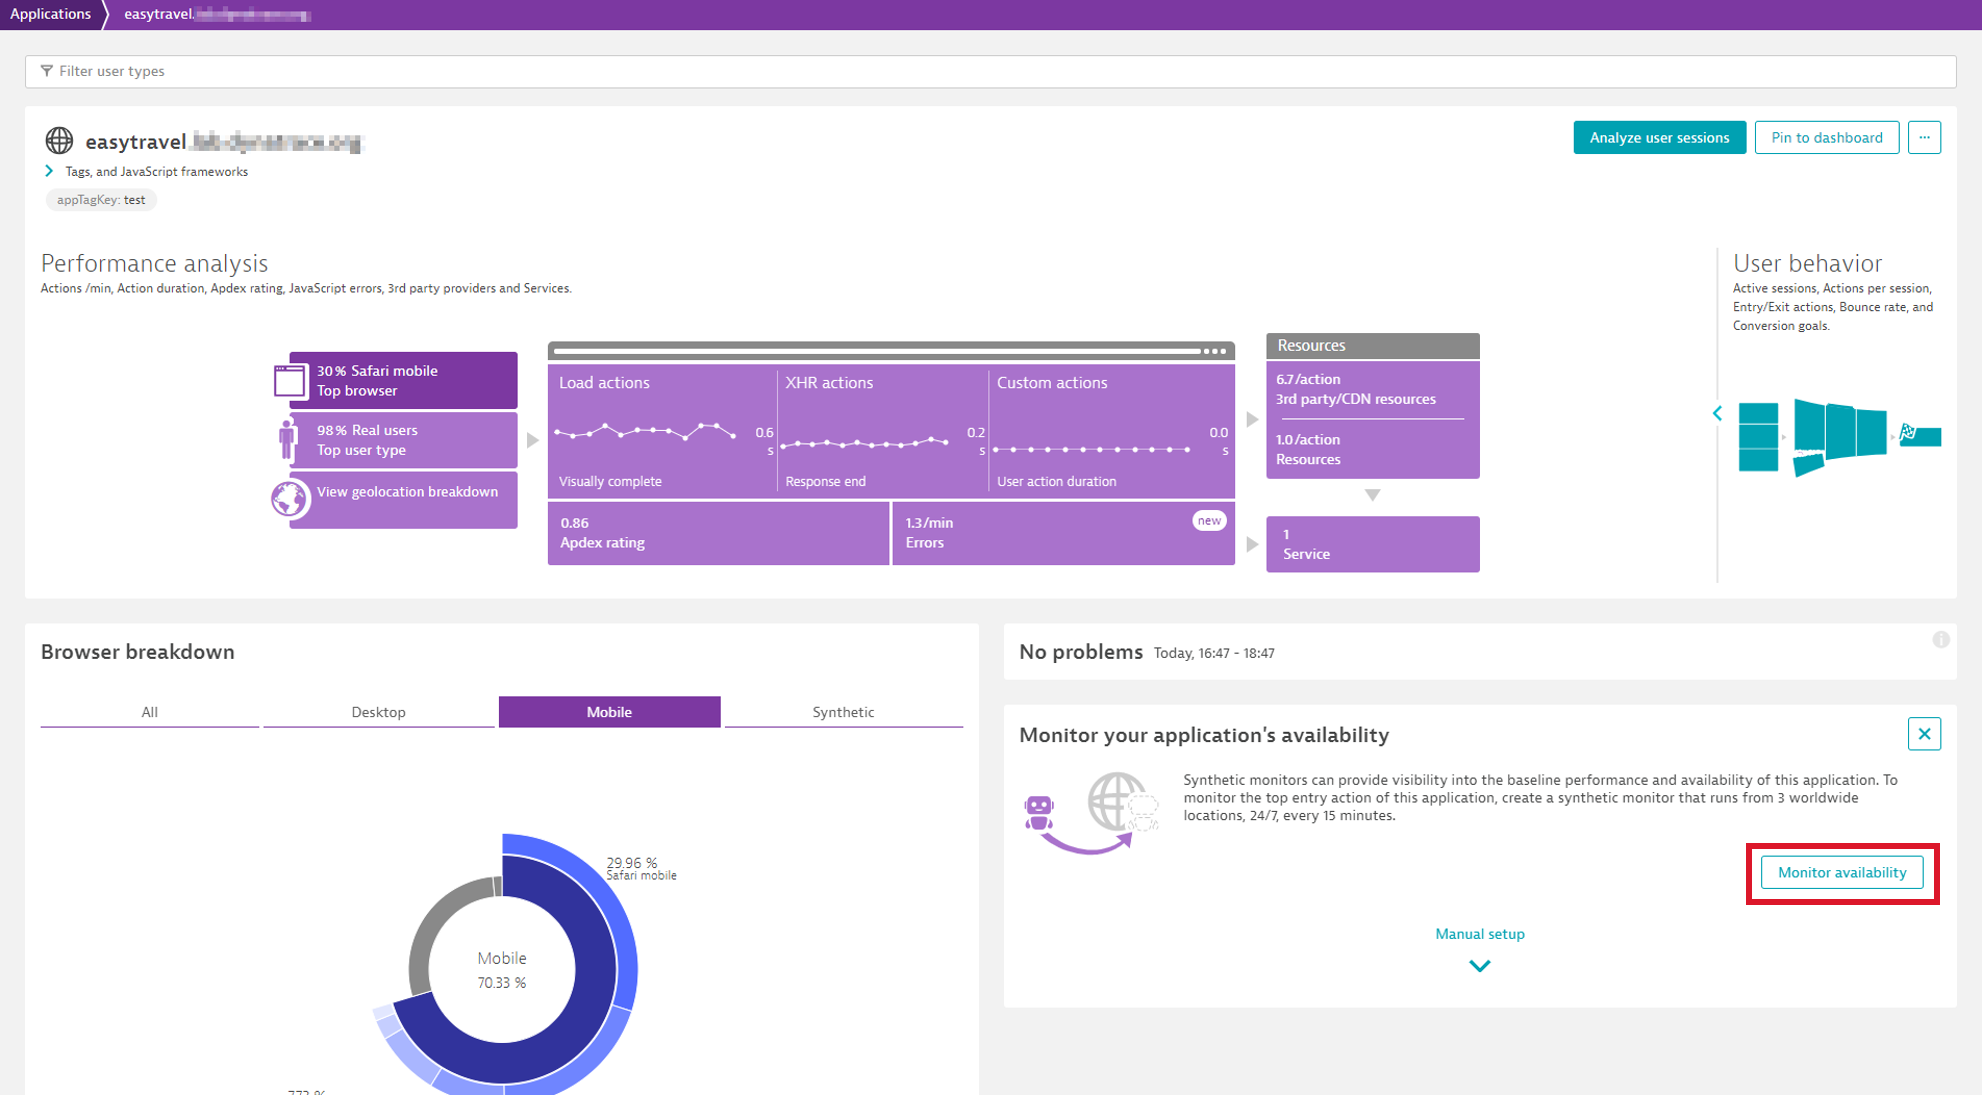 Begin monitoring application availability from the application overview page